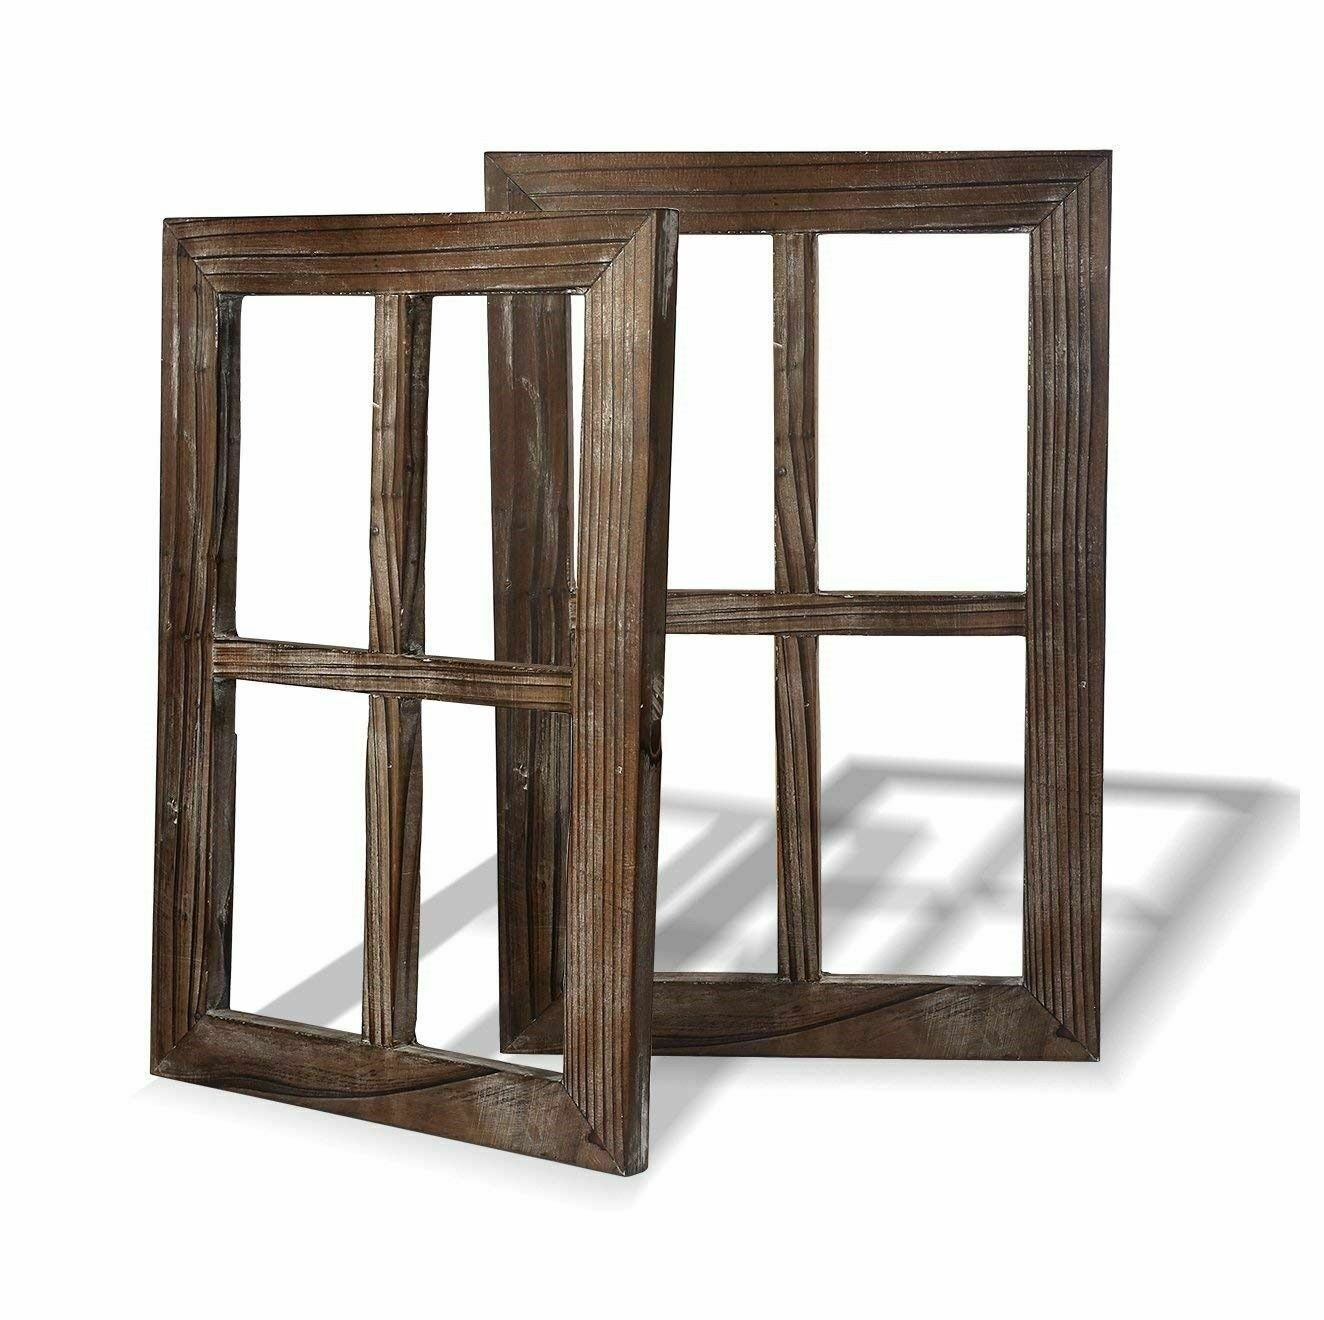 Fake Window Wall Decal Mount Frame Art Living Room Decor Rustic Decoration 2pc